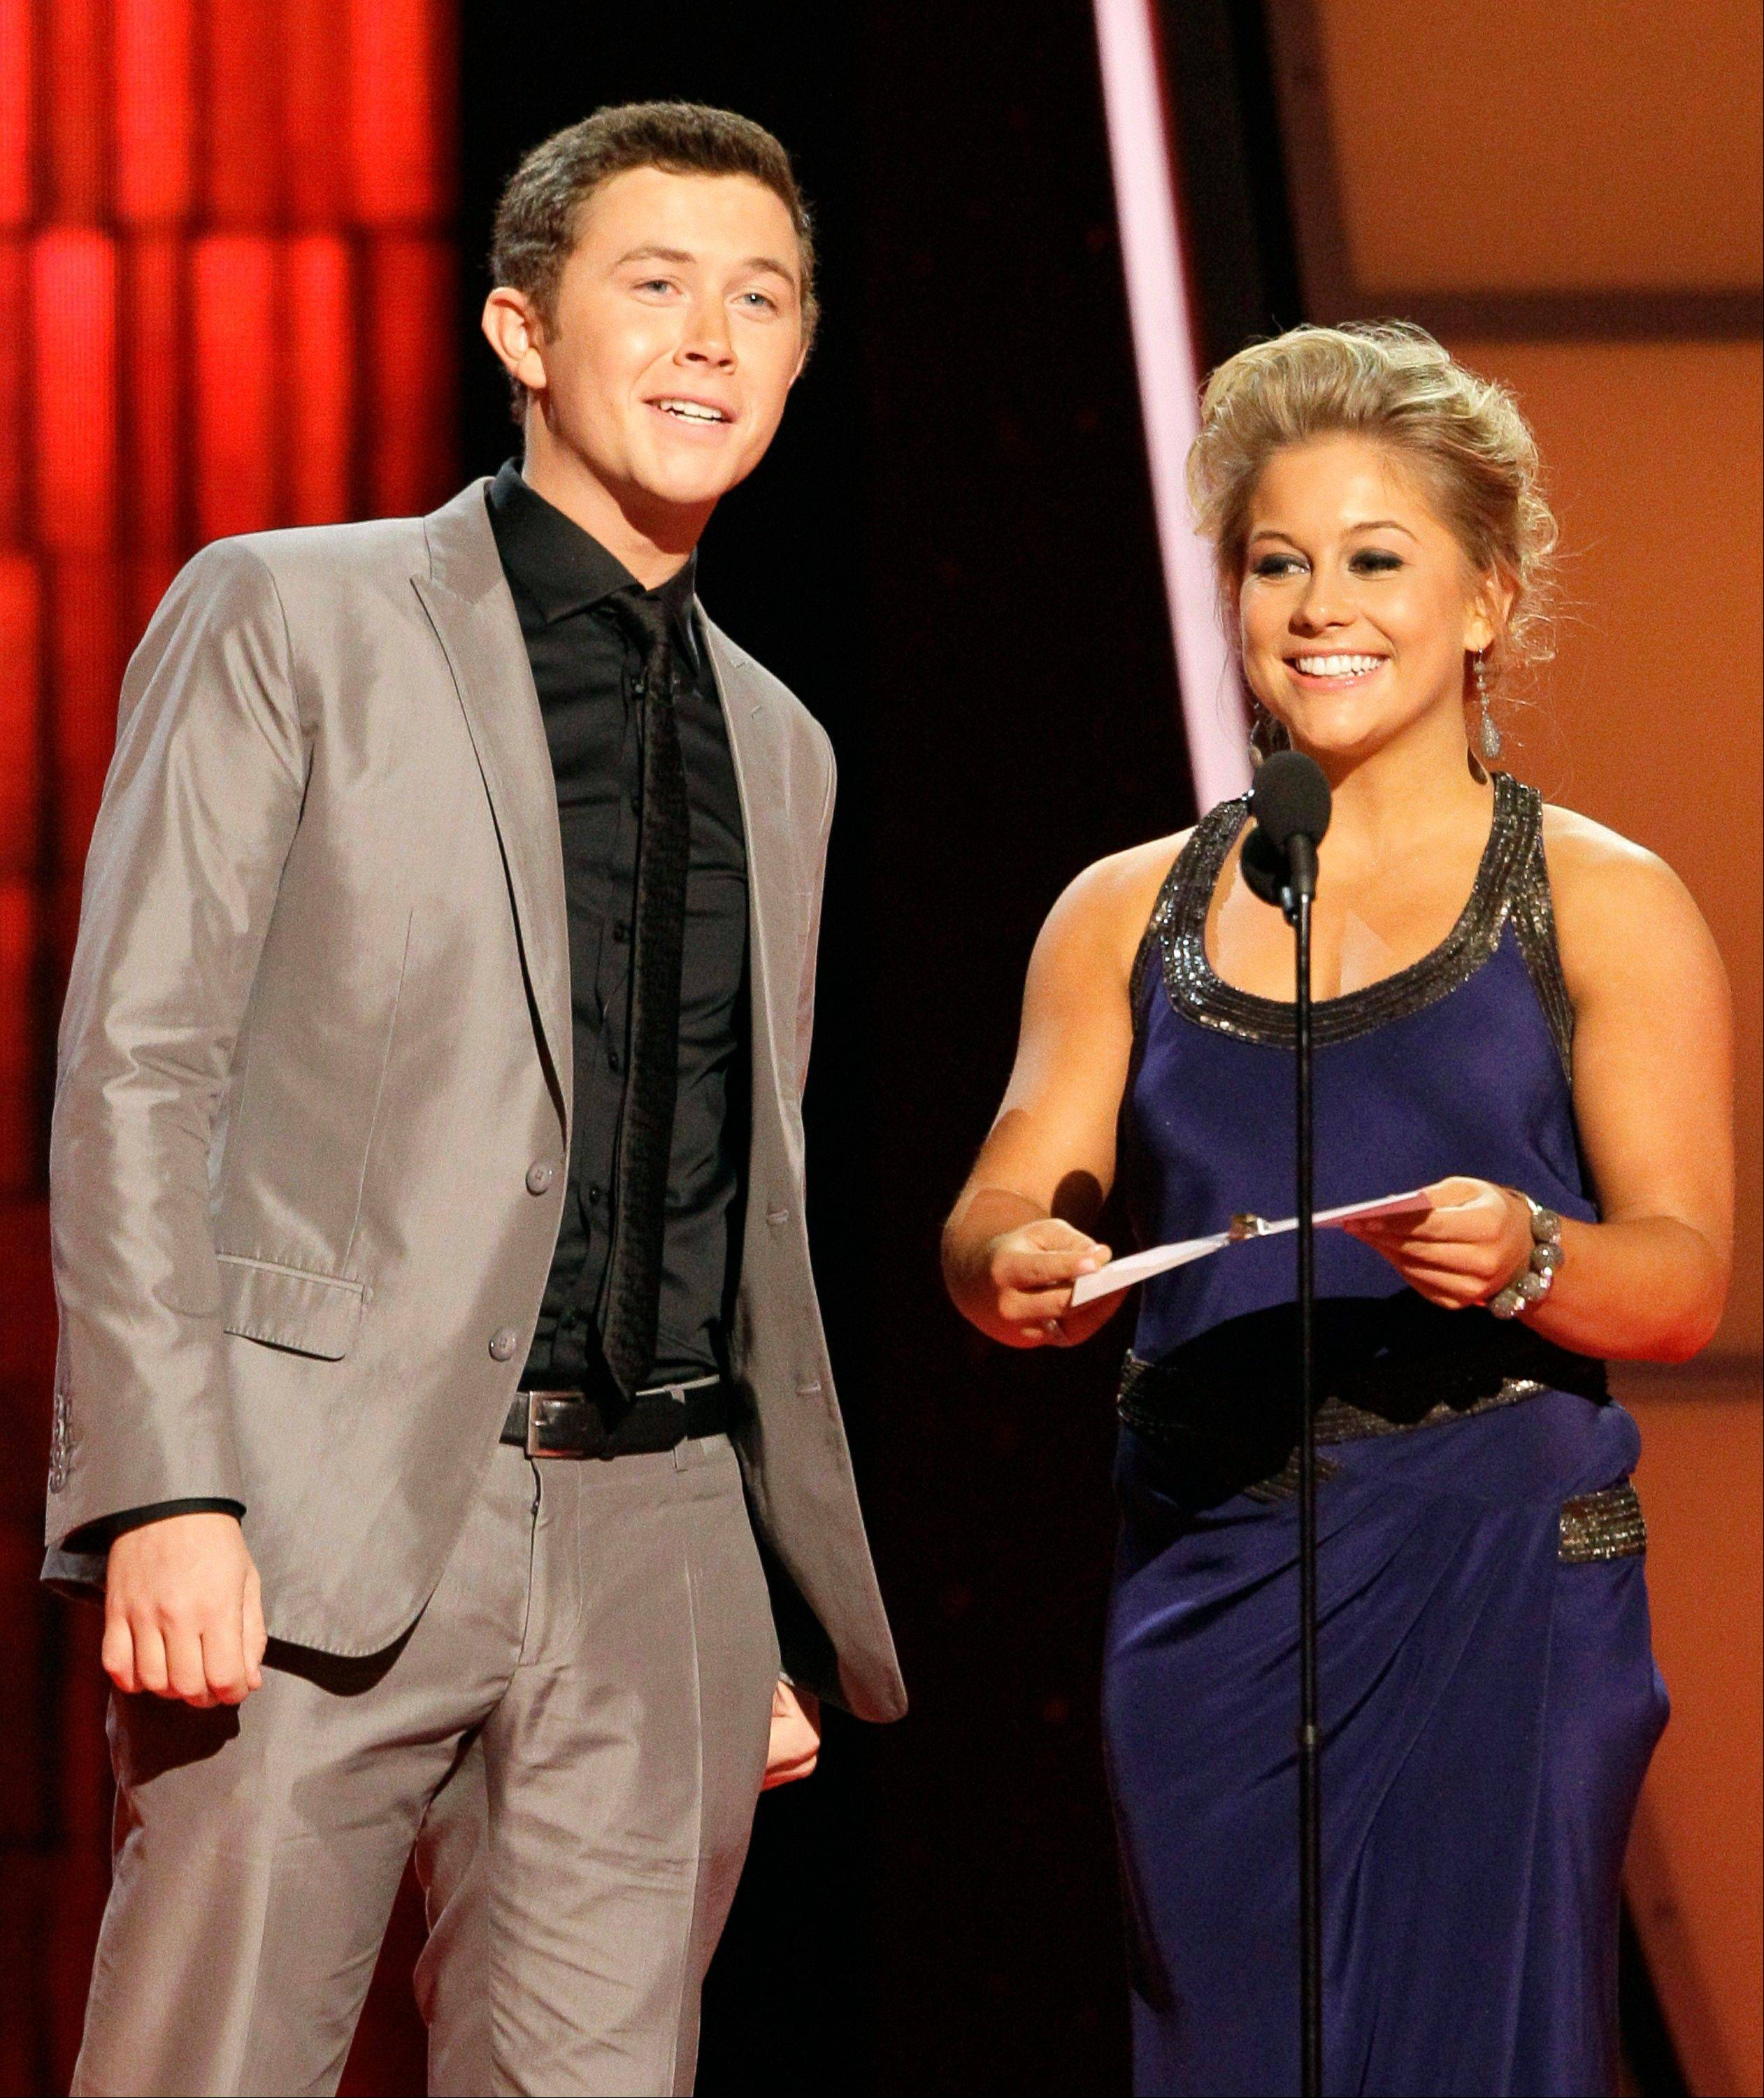 Scotty McCreery, left, and Shawn Johnson present the award for vocal group of the year at the 46th Annual Country Music Awards at the Bridgestone Arena on Thursday, Nov. 1, 2012, in Nashville, Tenn.